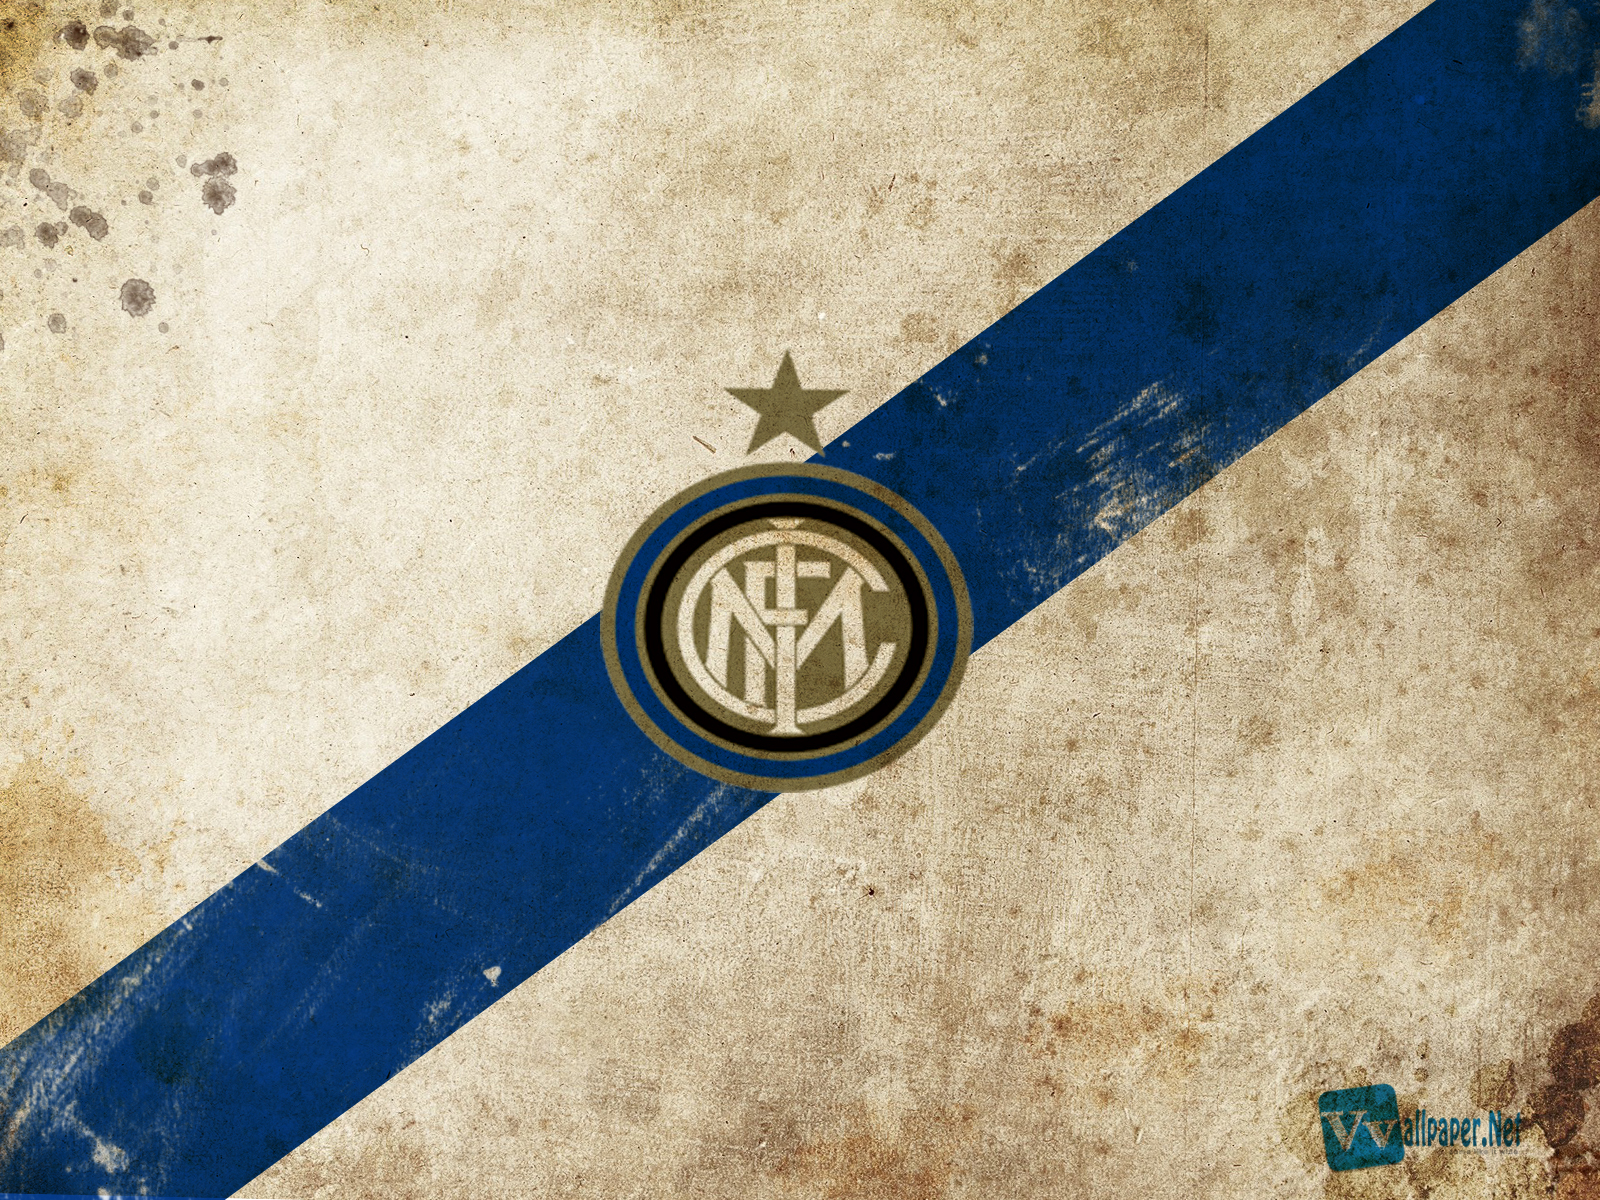 Central wallpaper inter milan logo hd wallpapers inter milan logo on old paper texture hd wallpaper voltagebd Image collections